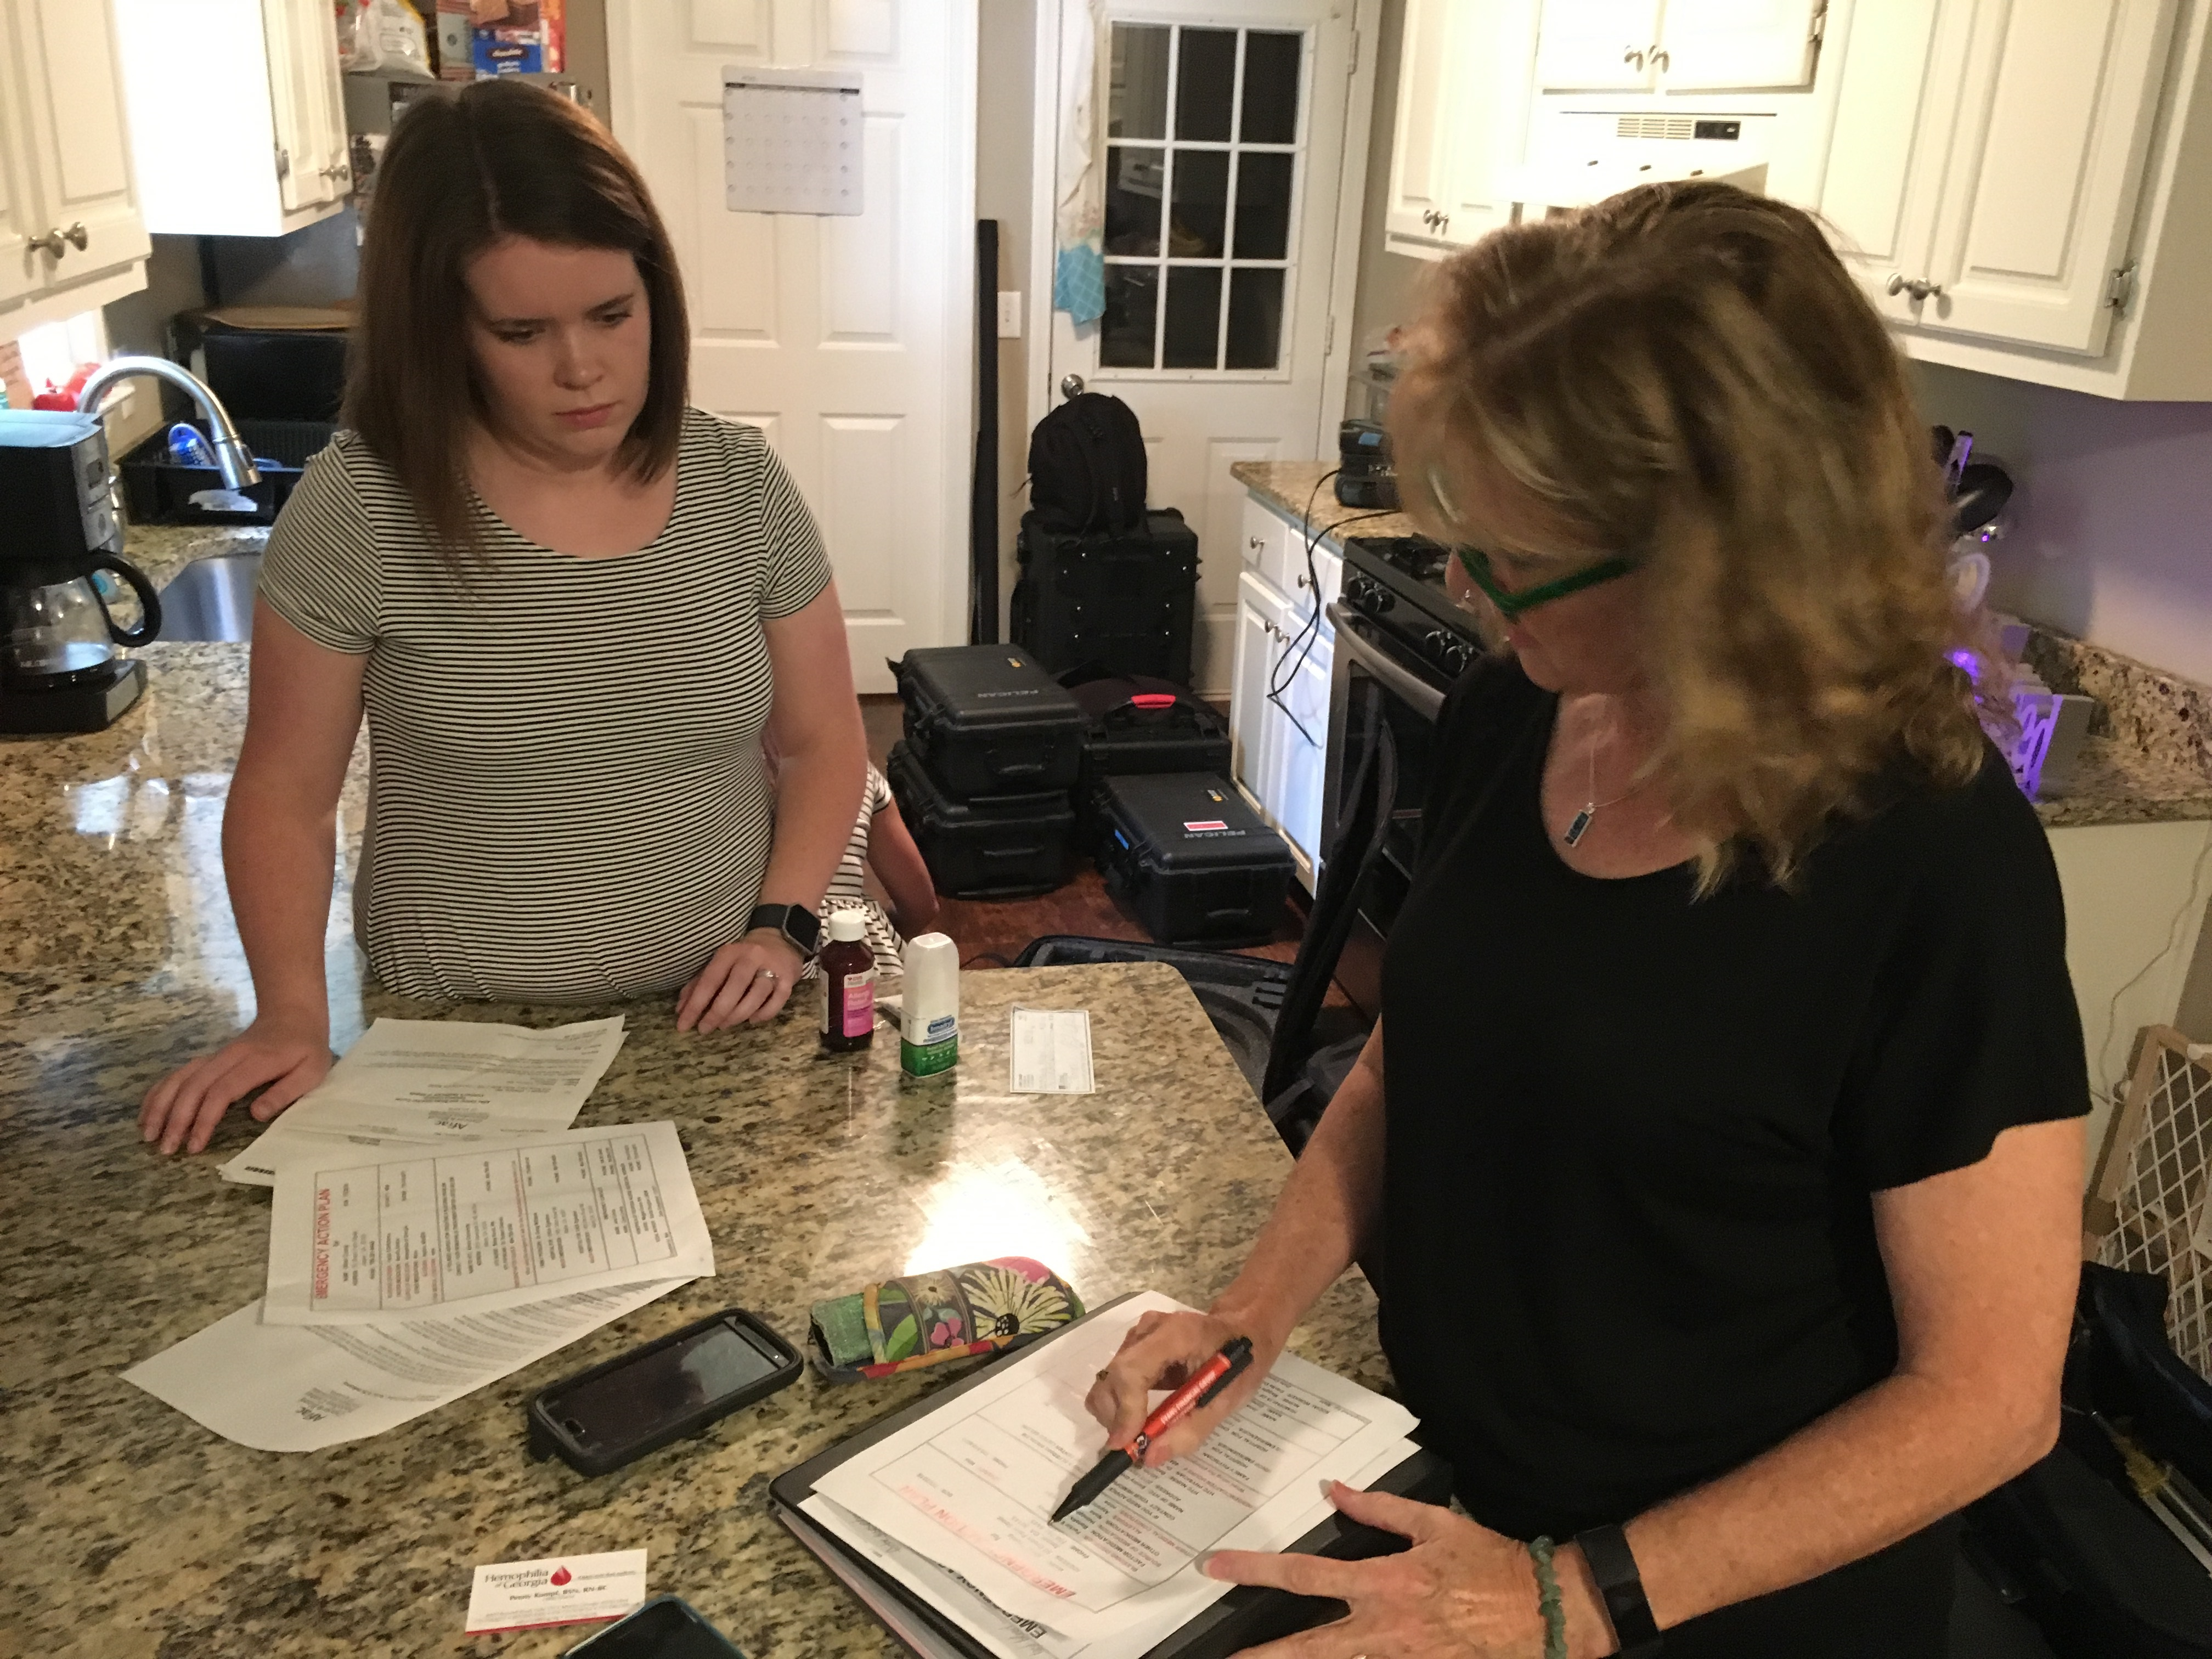 Outreach Nurse Discusses Emergency Action Plan in Client Home